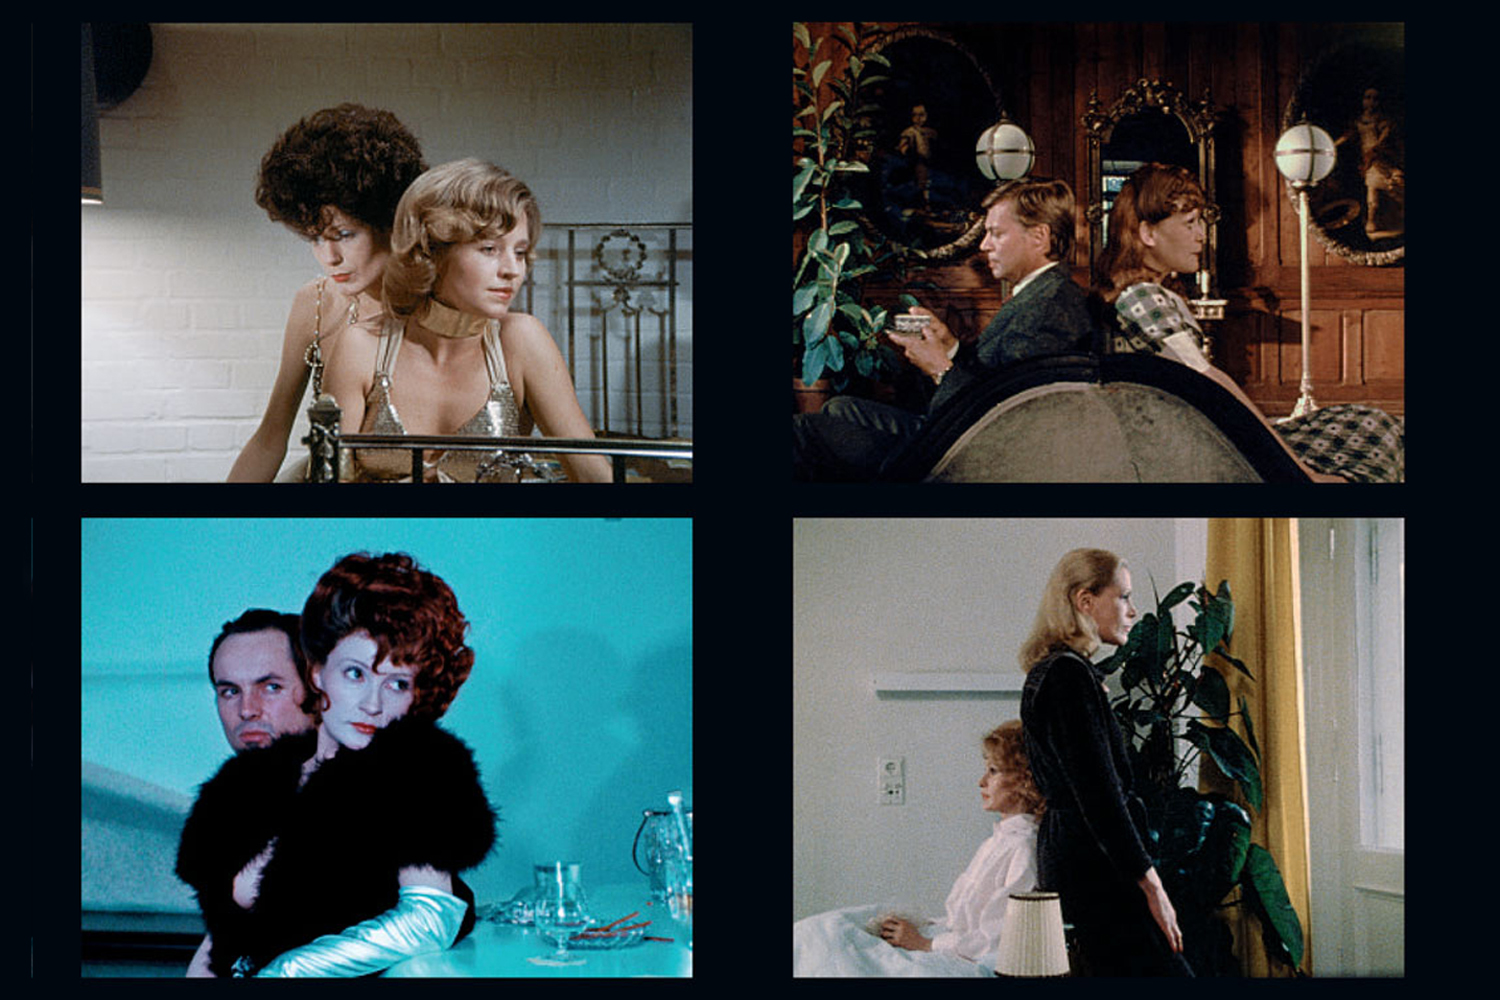 Film stills, clockwise from top left: The Bitter Tears of Petra von Kant (1972), Martha (1973), Fear of Fear (1975), World on a Wire (1973)